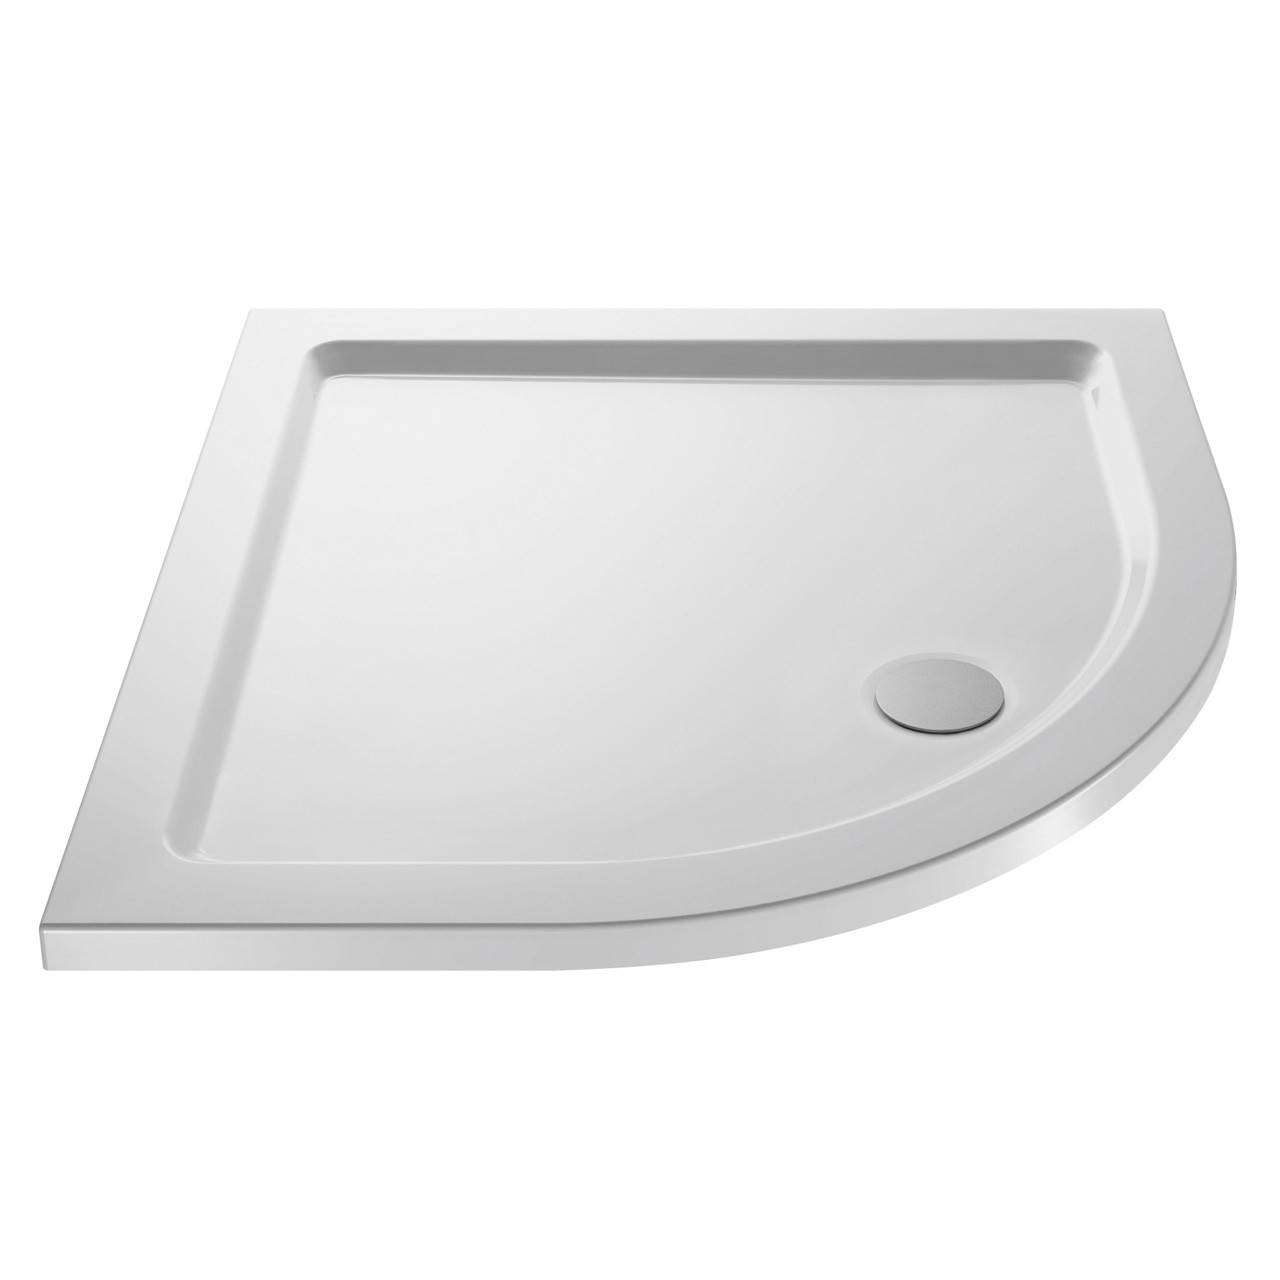 Premiere Pearlstone 1000mm x 1000mm x 40mm Quadrant Shower Tray - NTP107